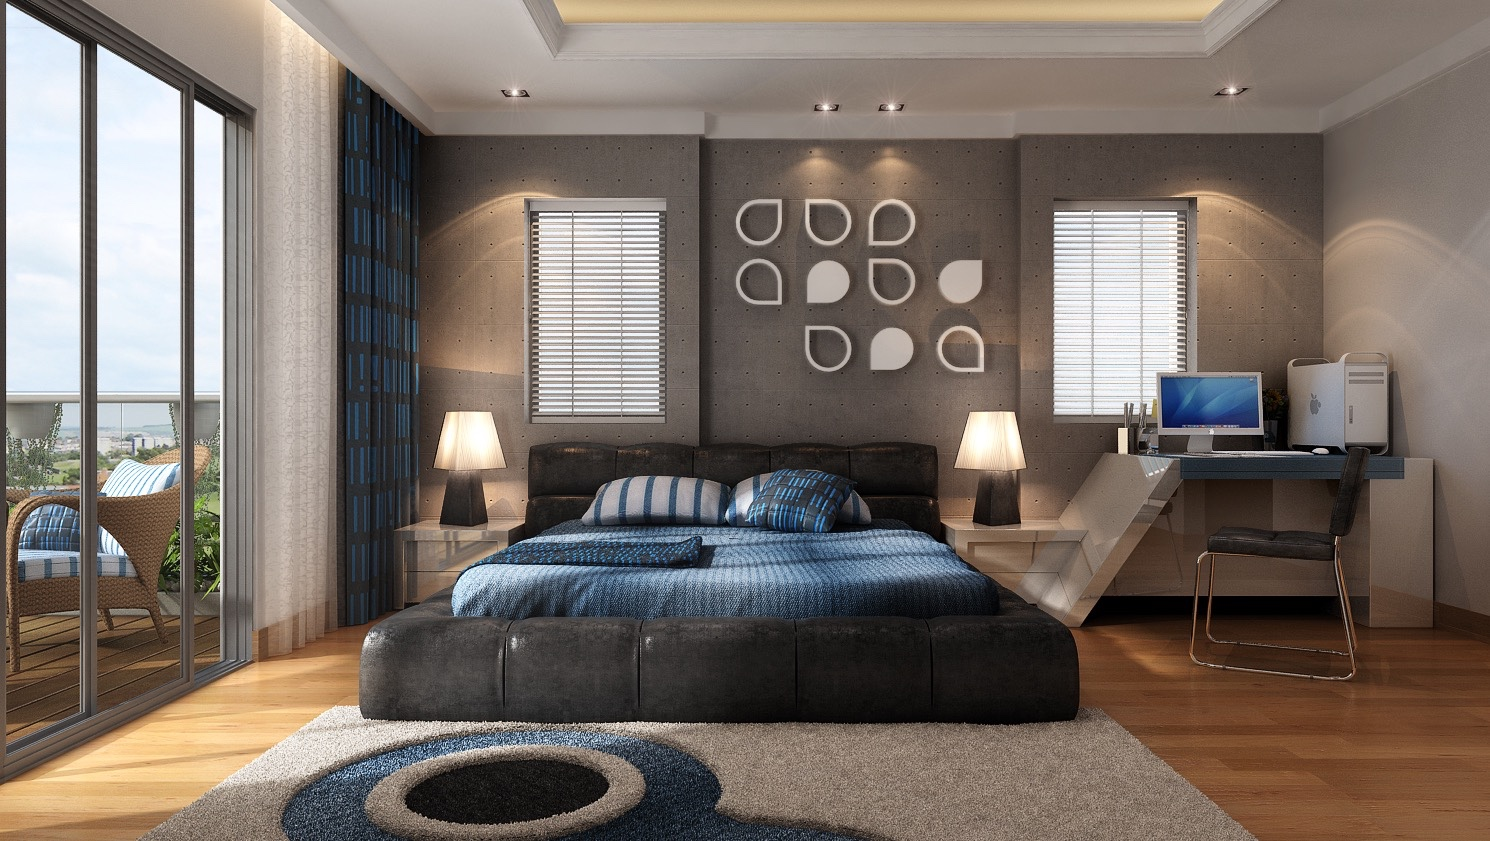 21 Cool Bedrooms for Clean and Simple Design Inspiration on Best Master Bedroom Designs  id=16112